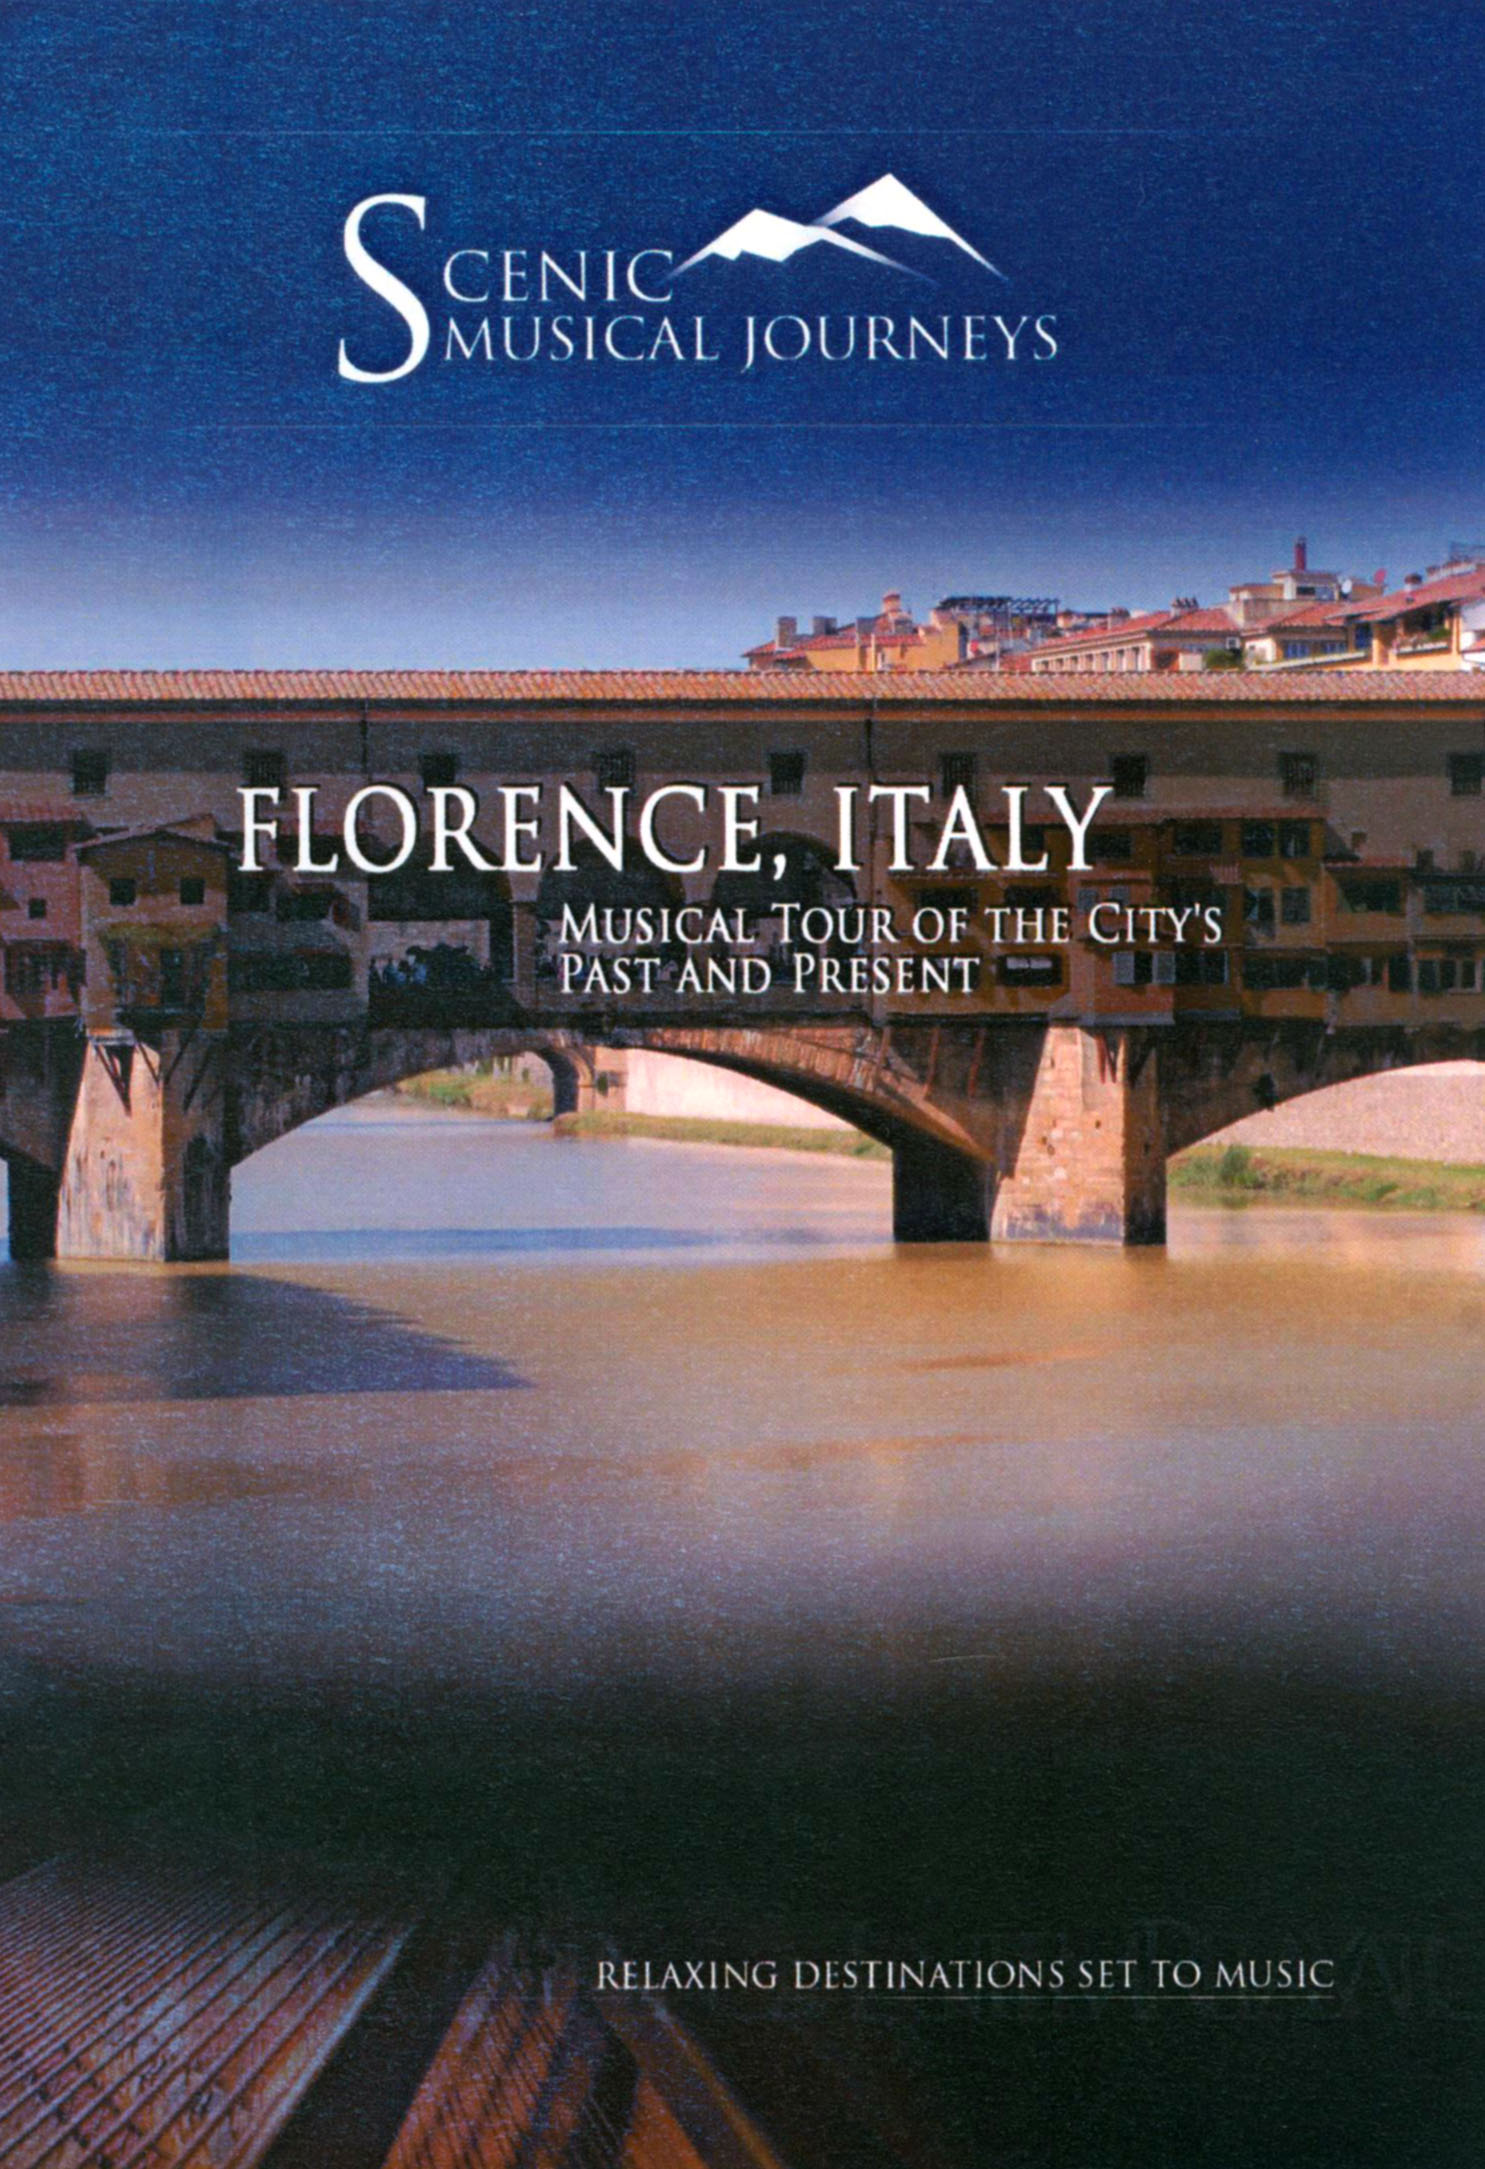 Scenic Musical Journeys: France - Scenic Musical Journeys: Florence, Italy - A Musical Tour